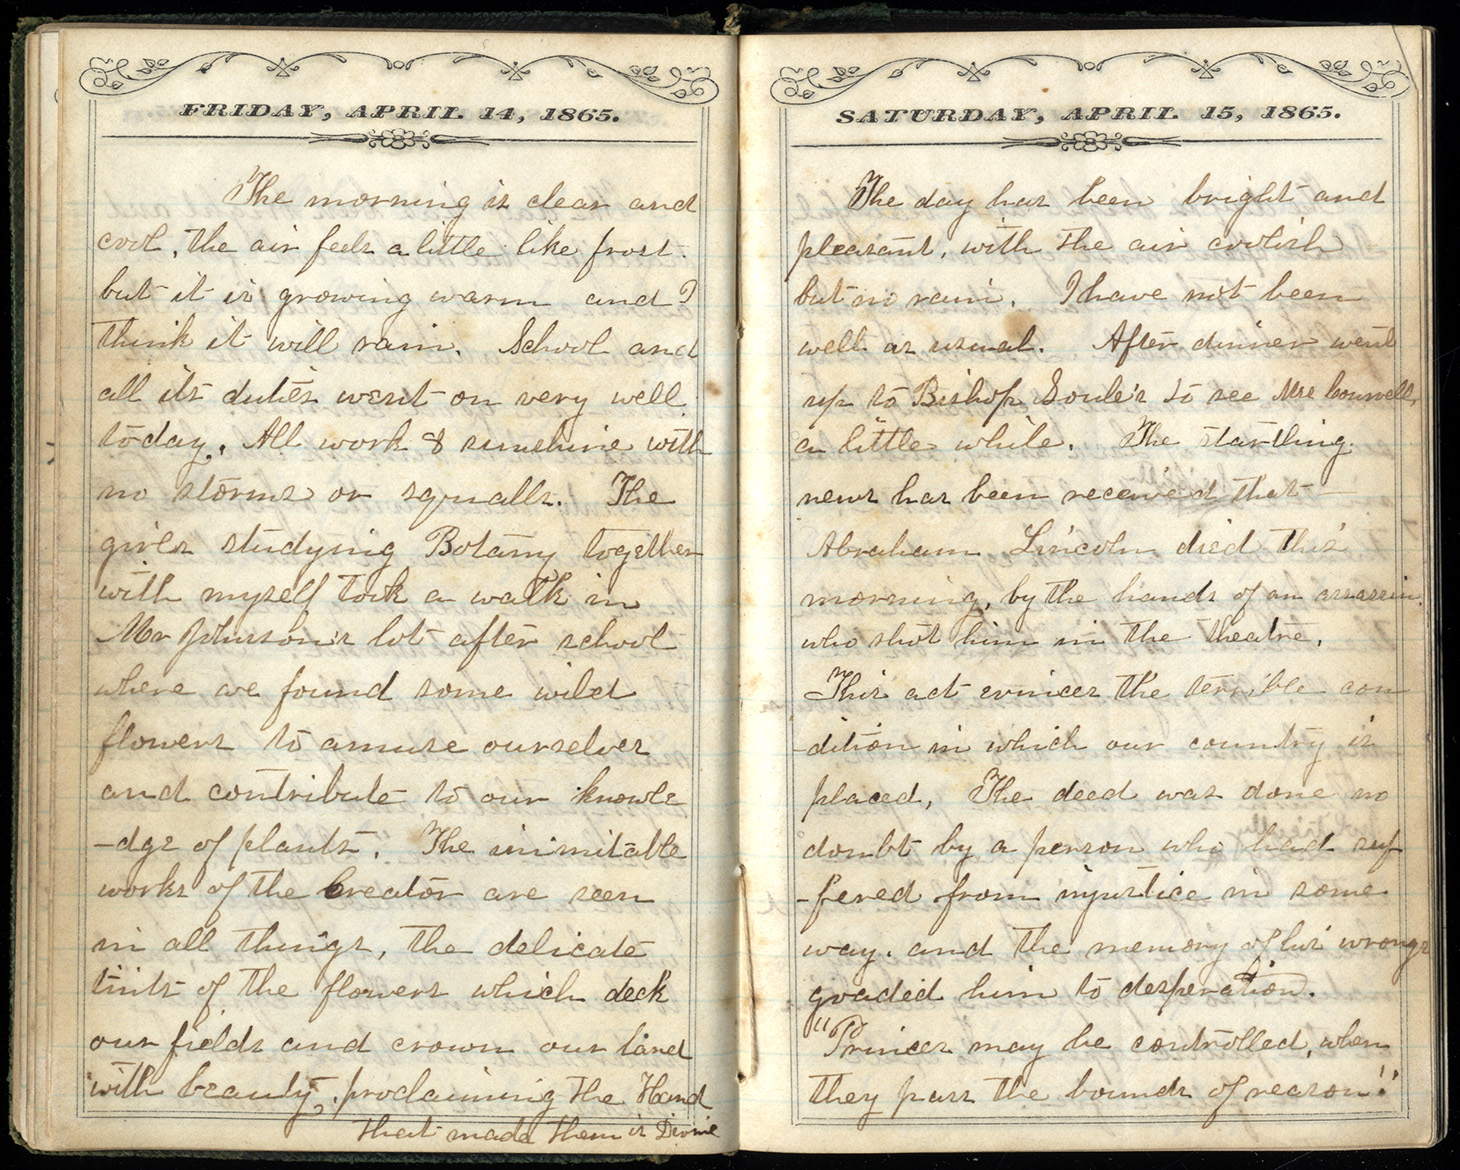 Abigail M. Brook's Diary